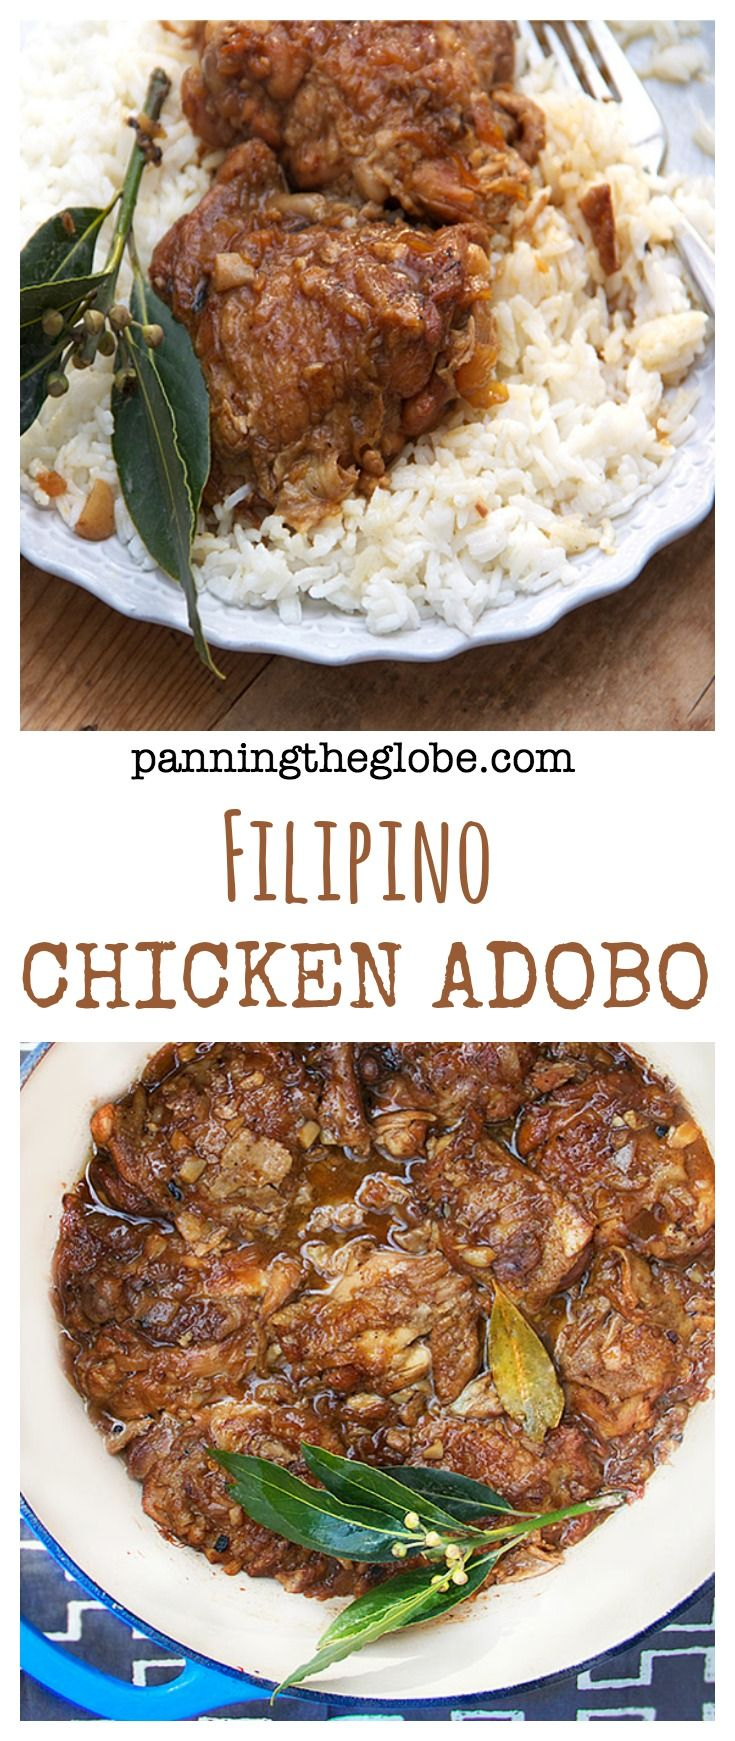 Chicken Adobo from the Philippines: the most popular recipe on Panning The Globe. Tender chicken braised in a vinegary, garlicky sauce. Delicious with fluffy rice.